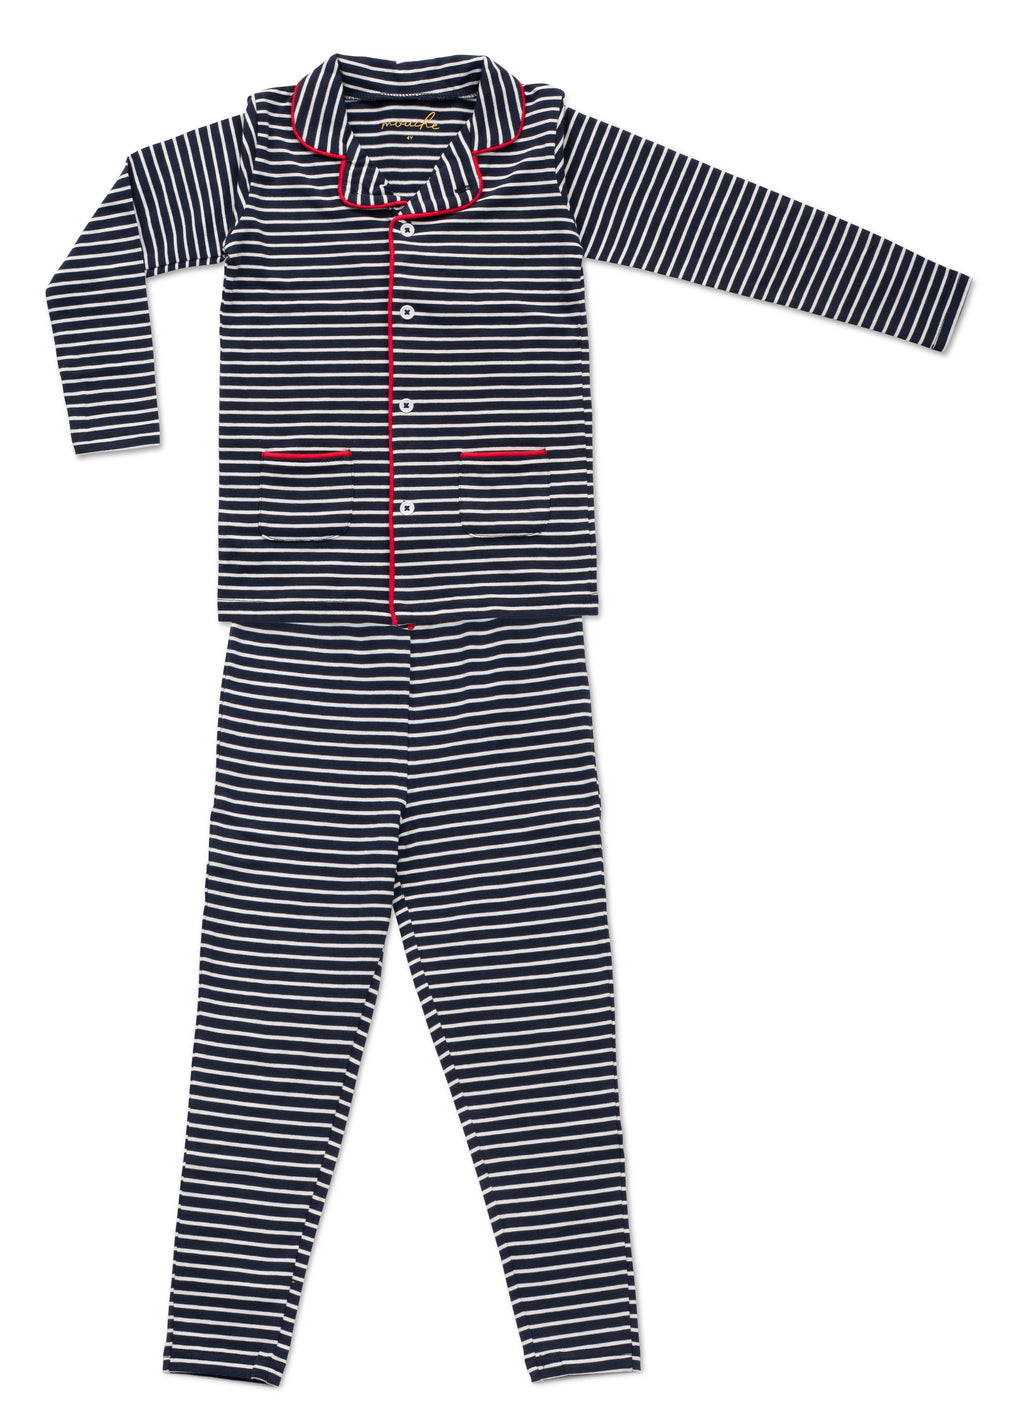 Boy's Striped Grandfather Pajamas - Mouche Kids